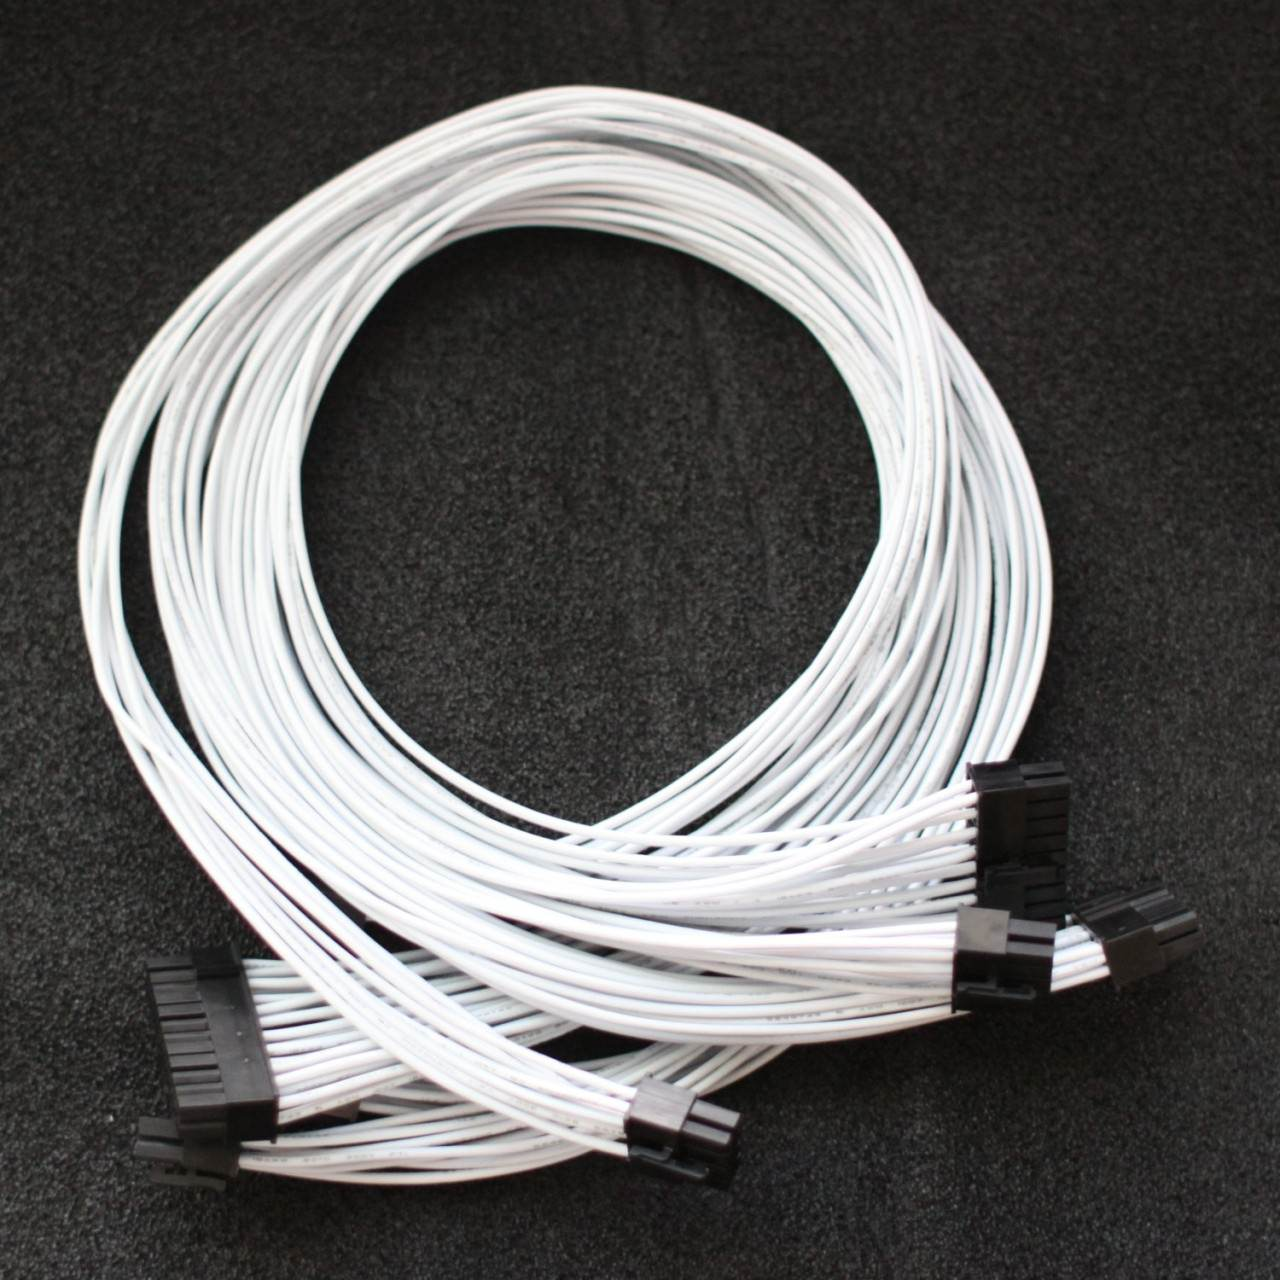 hight resolution of how to connect electrical wires white black wiring black white red wire light switch wiring white wire